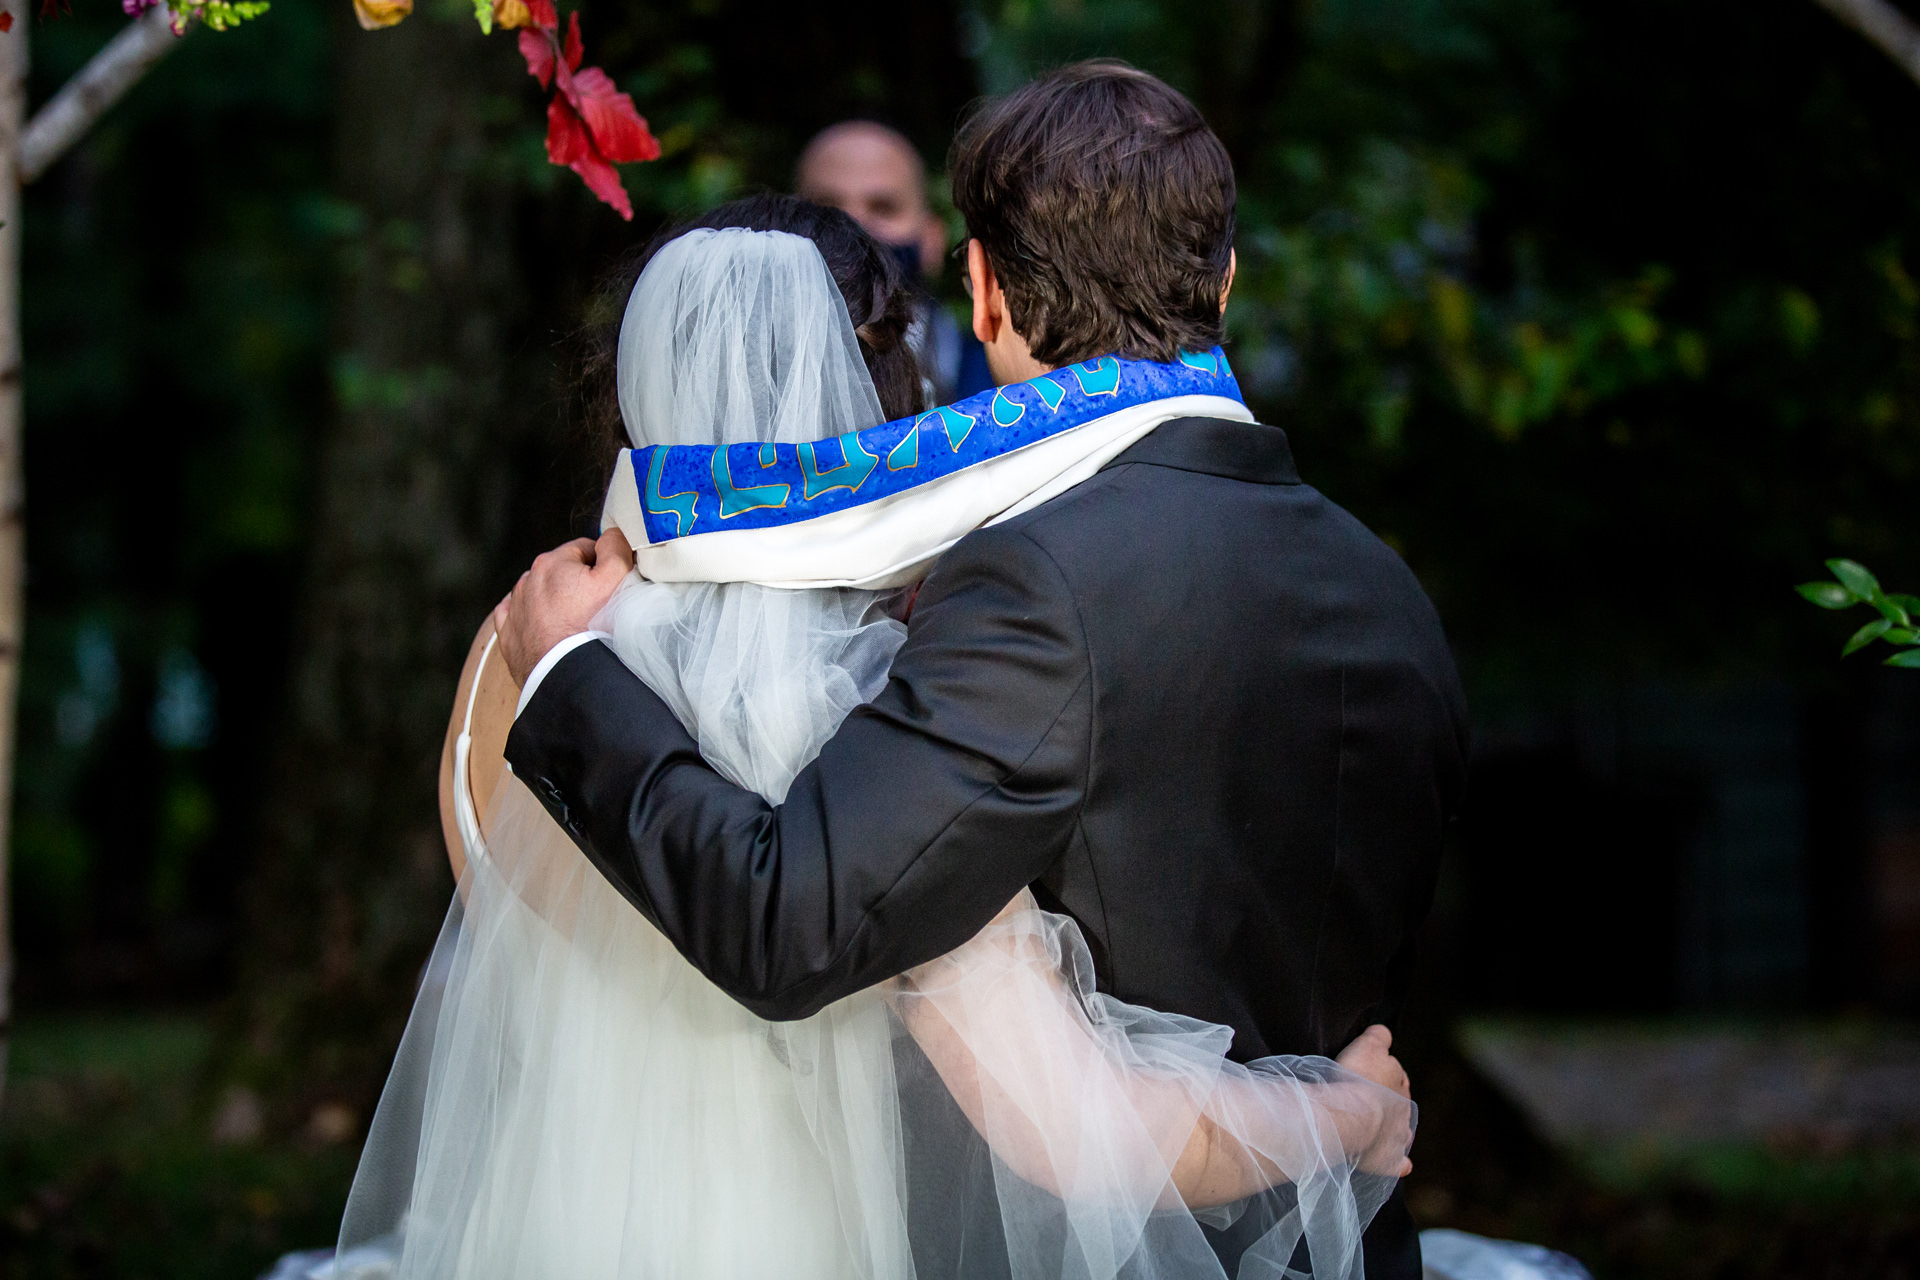 Montclair New Jersey Backyard Wedding Ceremony Pic | The bride and groom with arms around one another